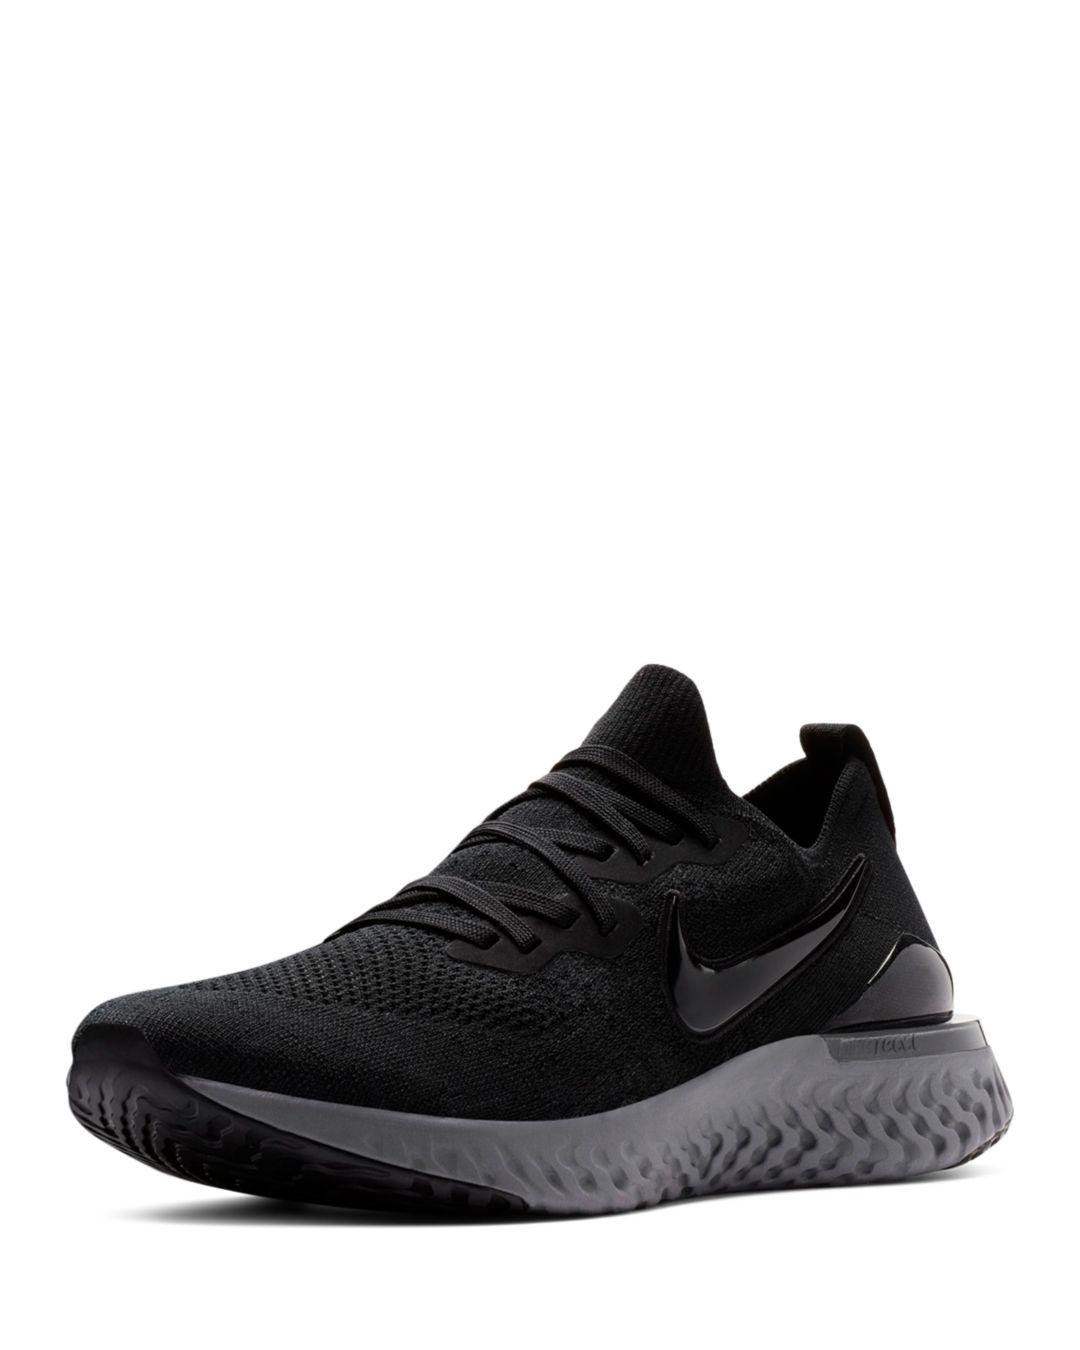 005a851b4f62 Lyst - Nike Men s Epic React Flyknit Sneakers in Black for Men - Save 8%